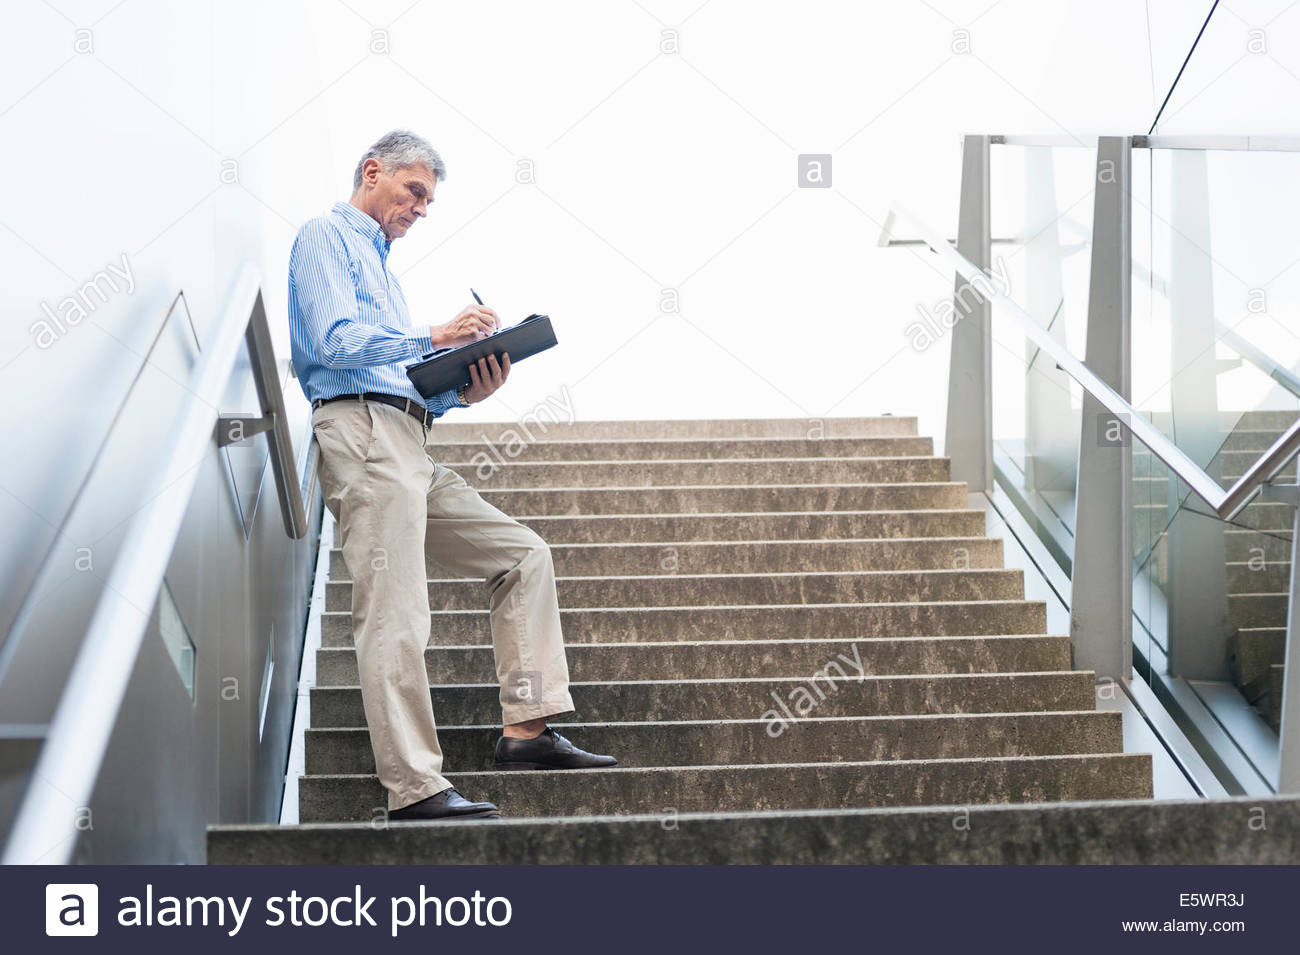 Senior adult businessman standing on stairs, holding notepad - Stock Image